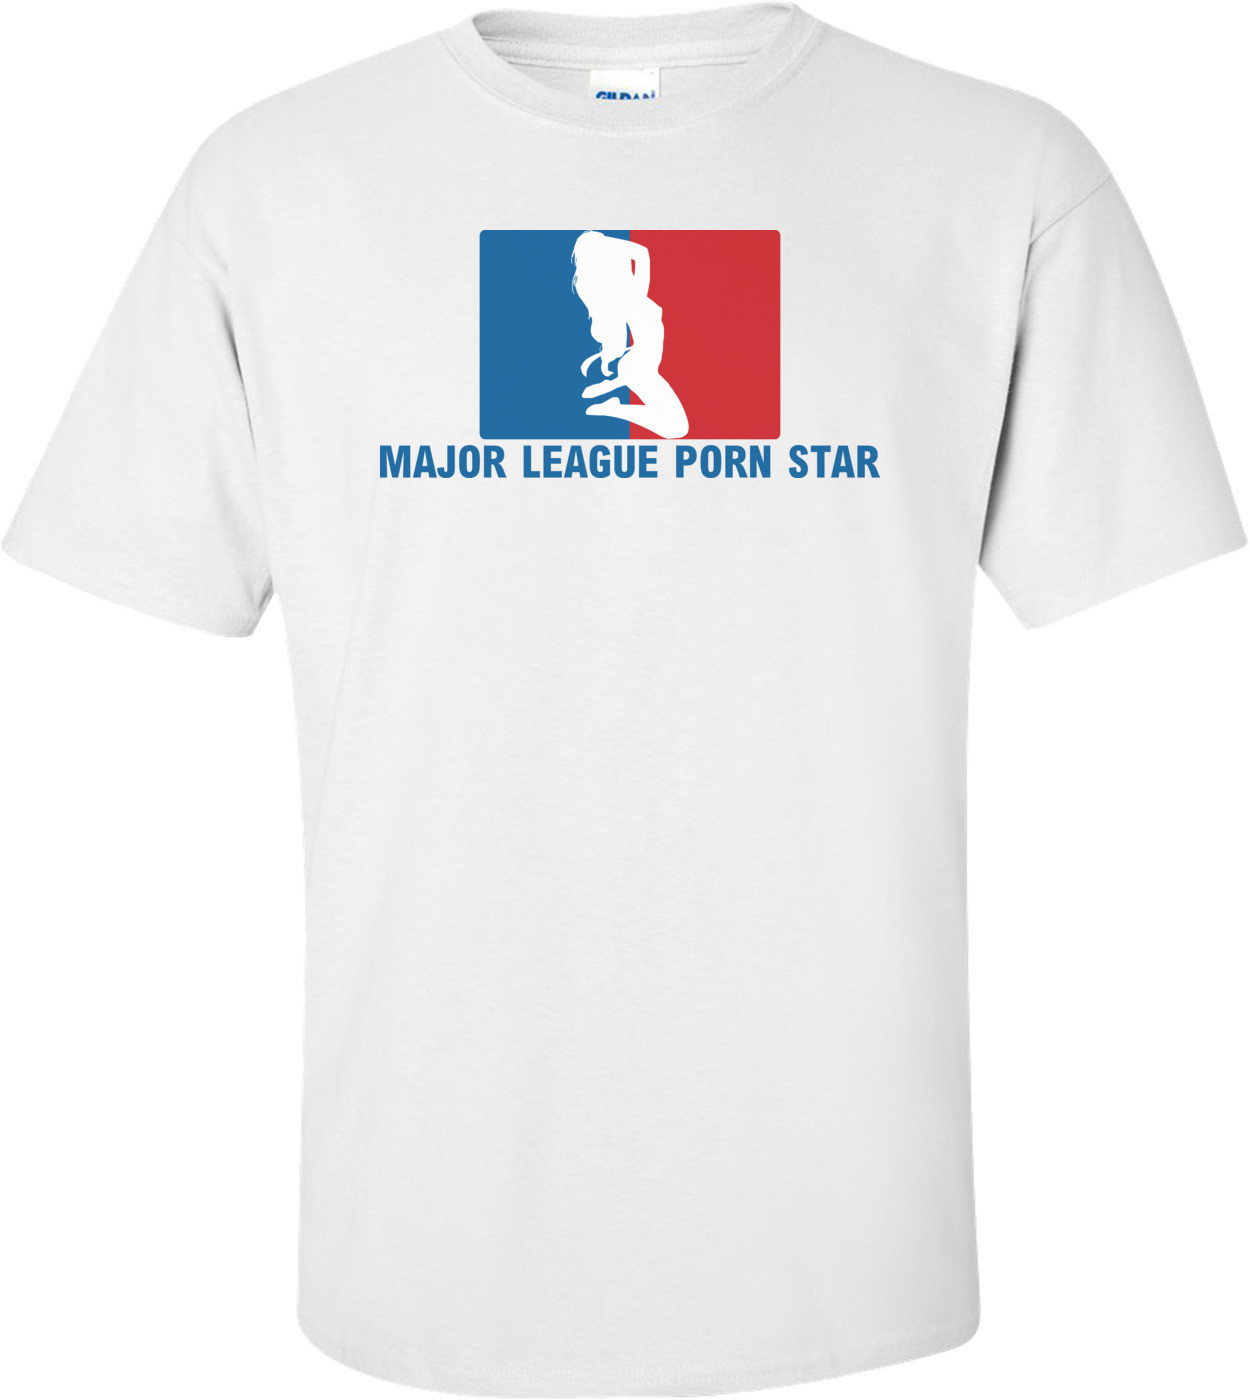 Major League Porn Star T-shirt